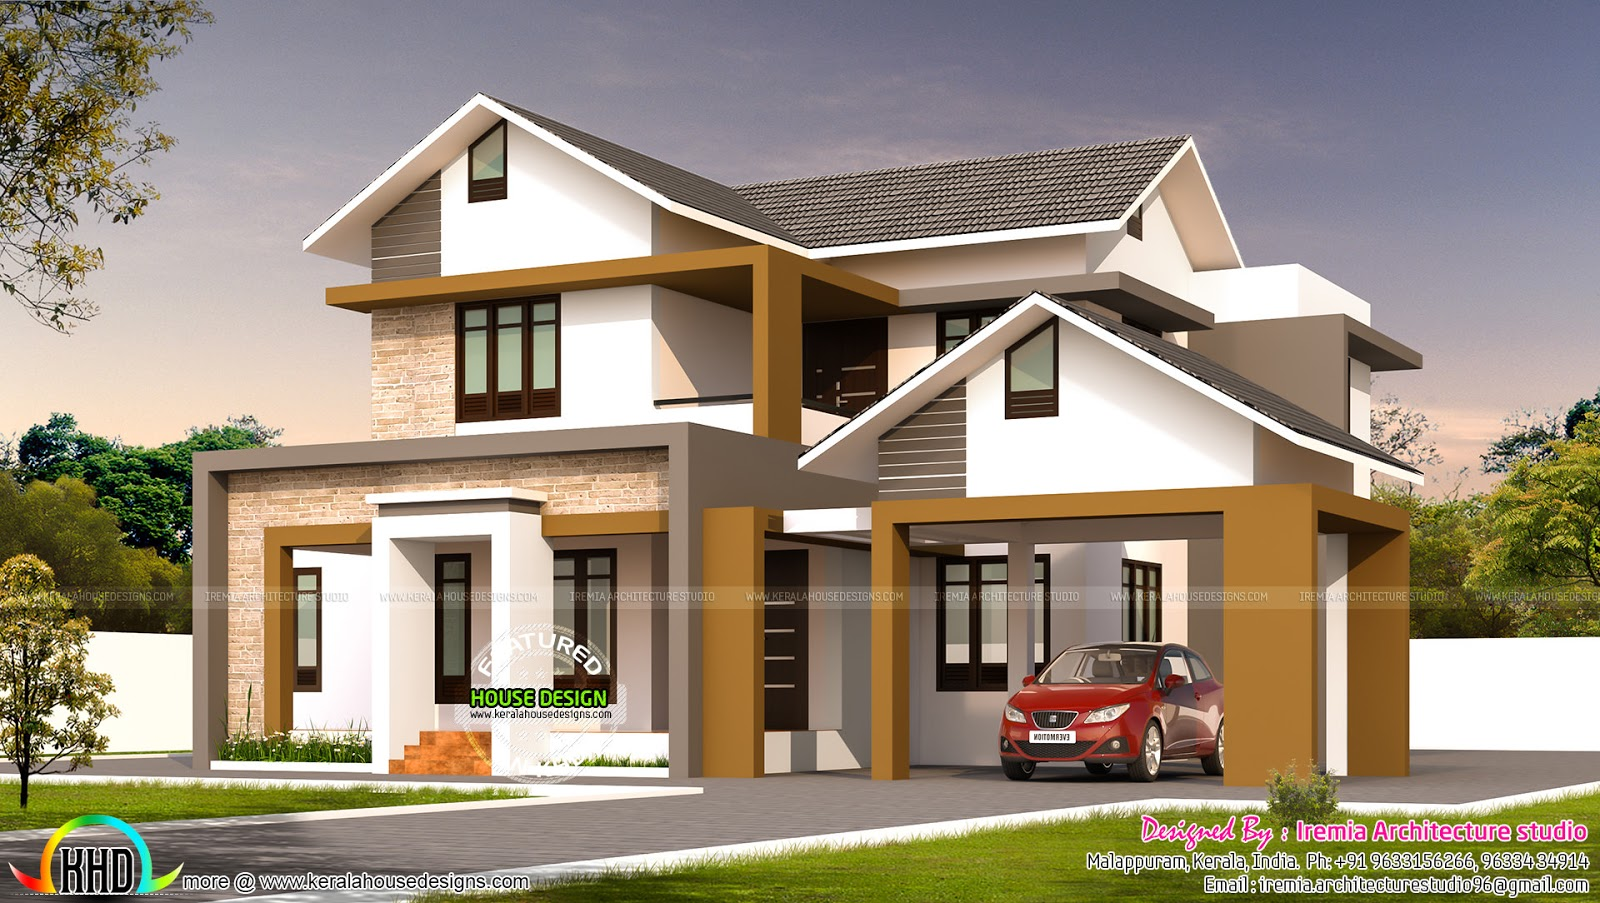 modern house by iremia architecture studio - Home Design Kerala